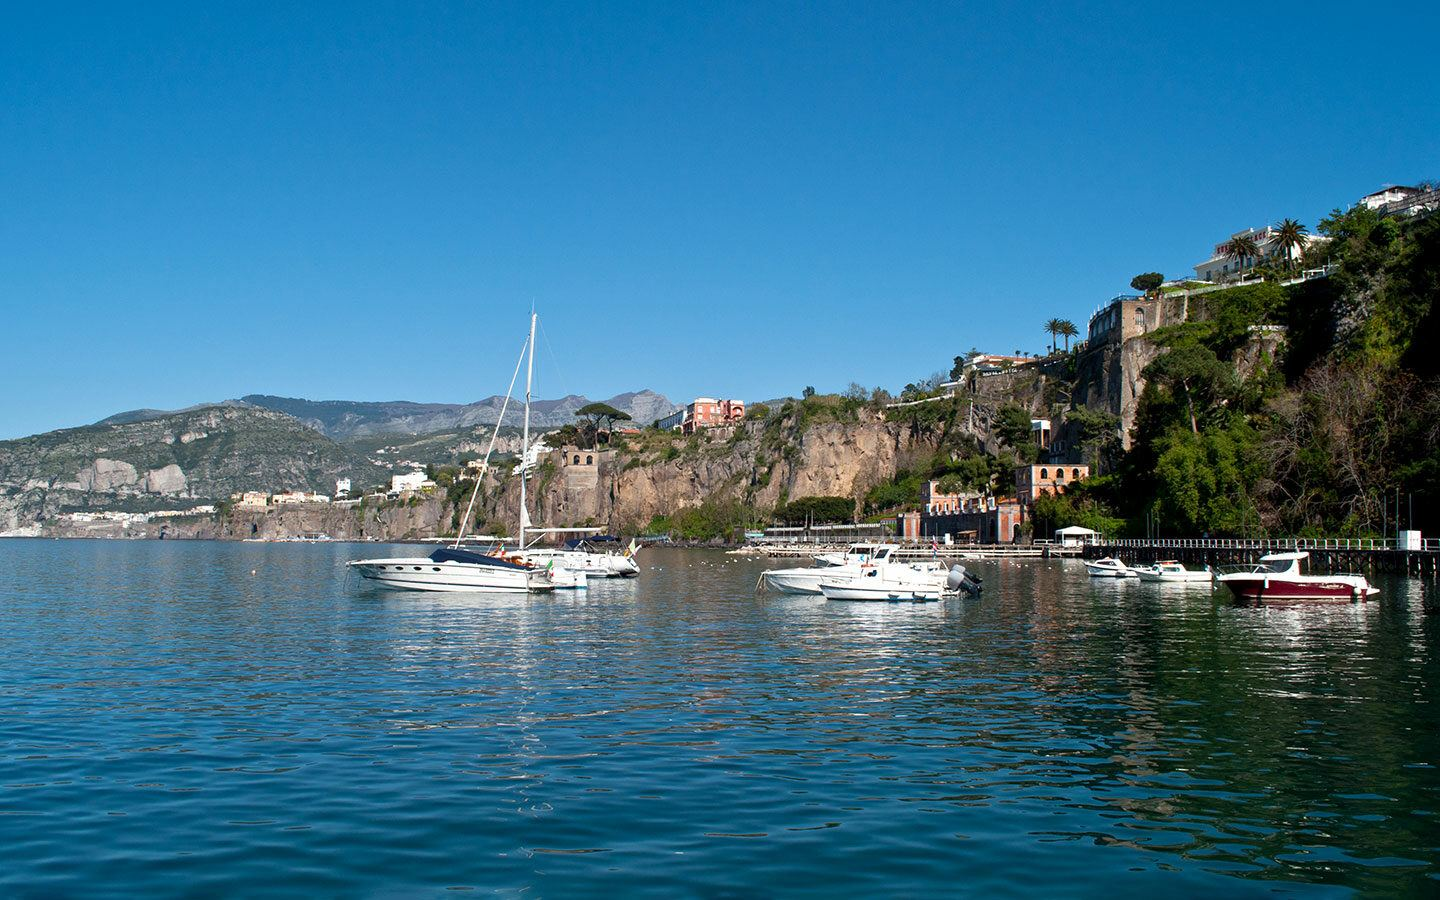 Boats in Sorrento harbour